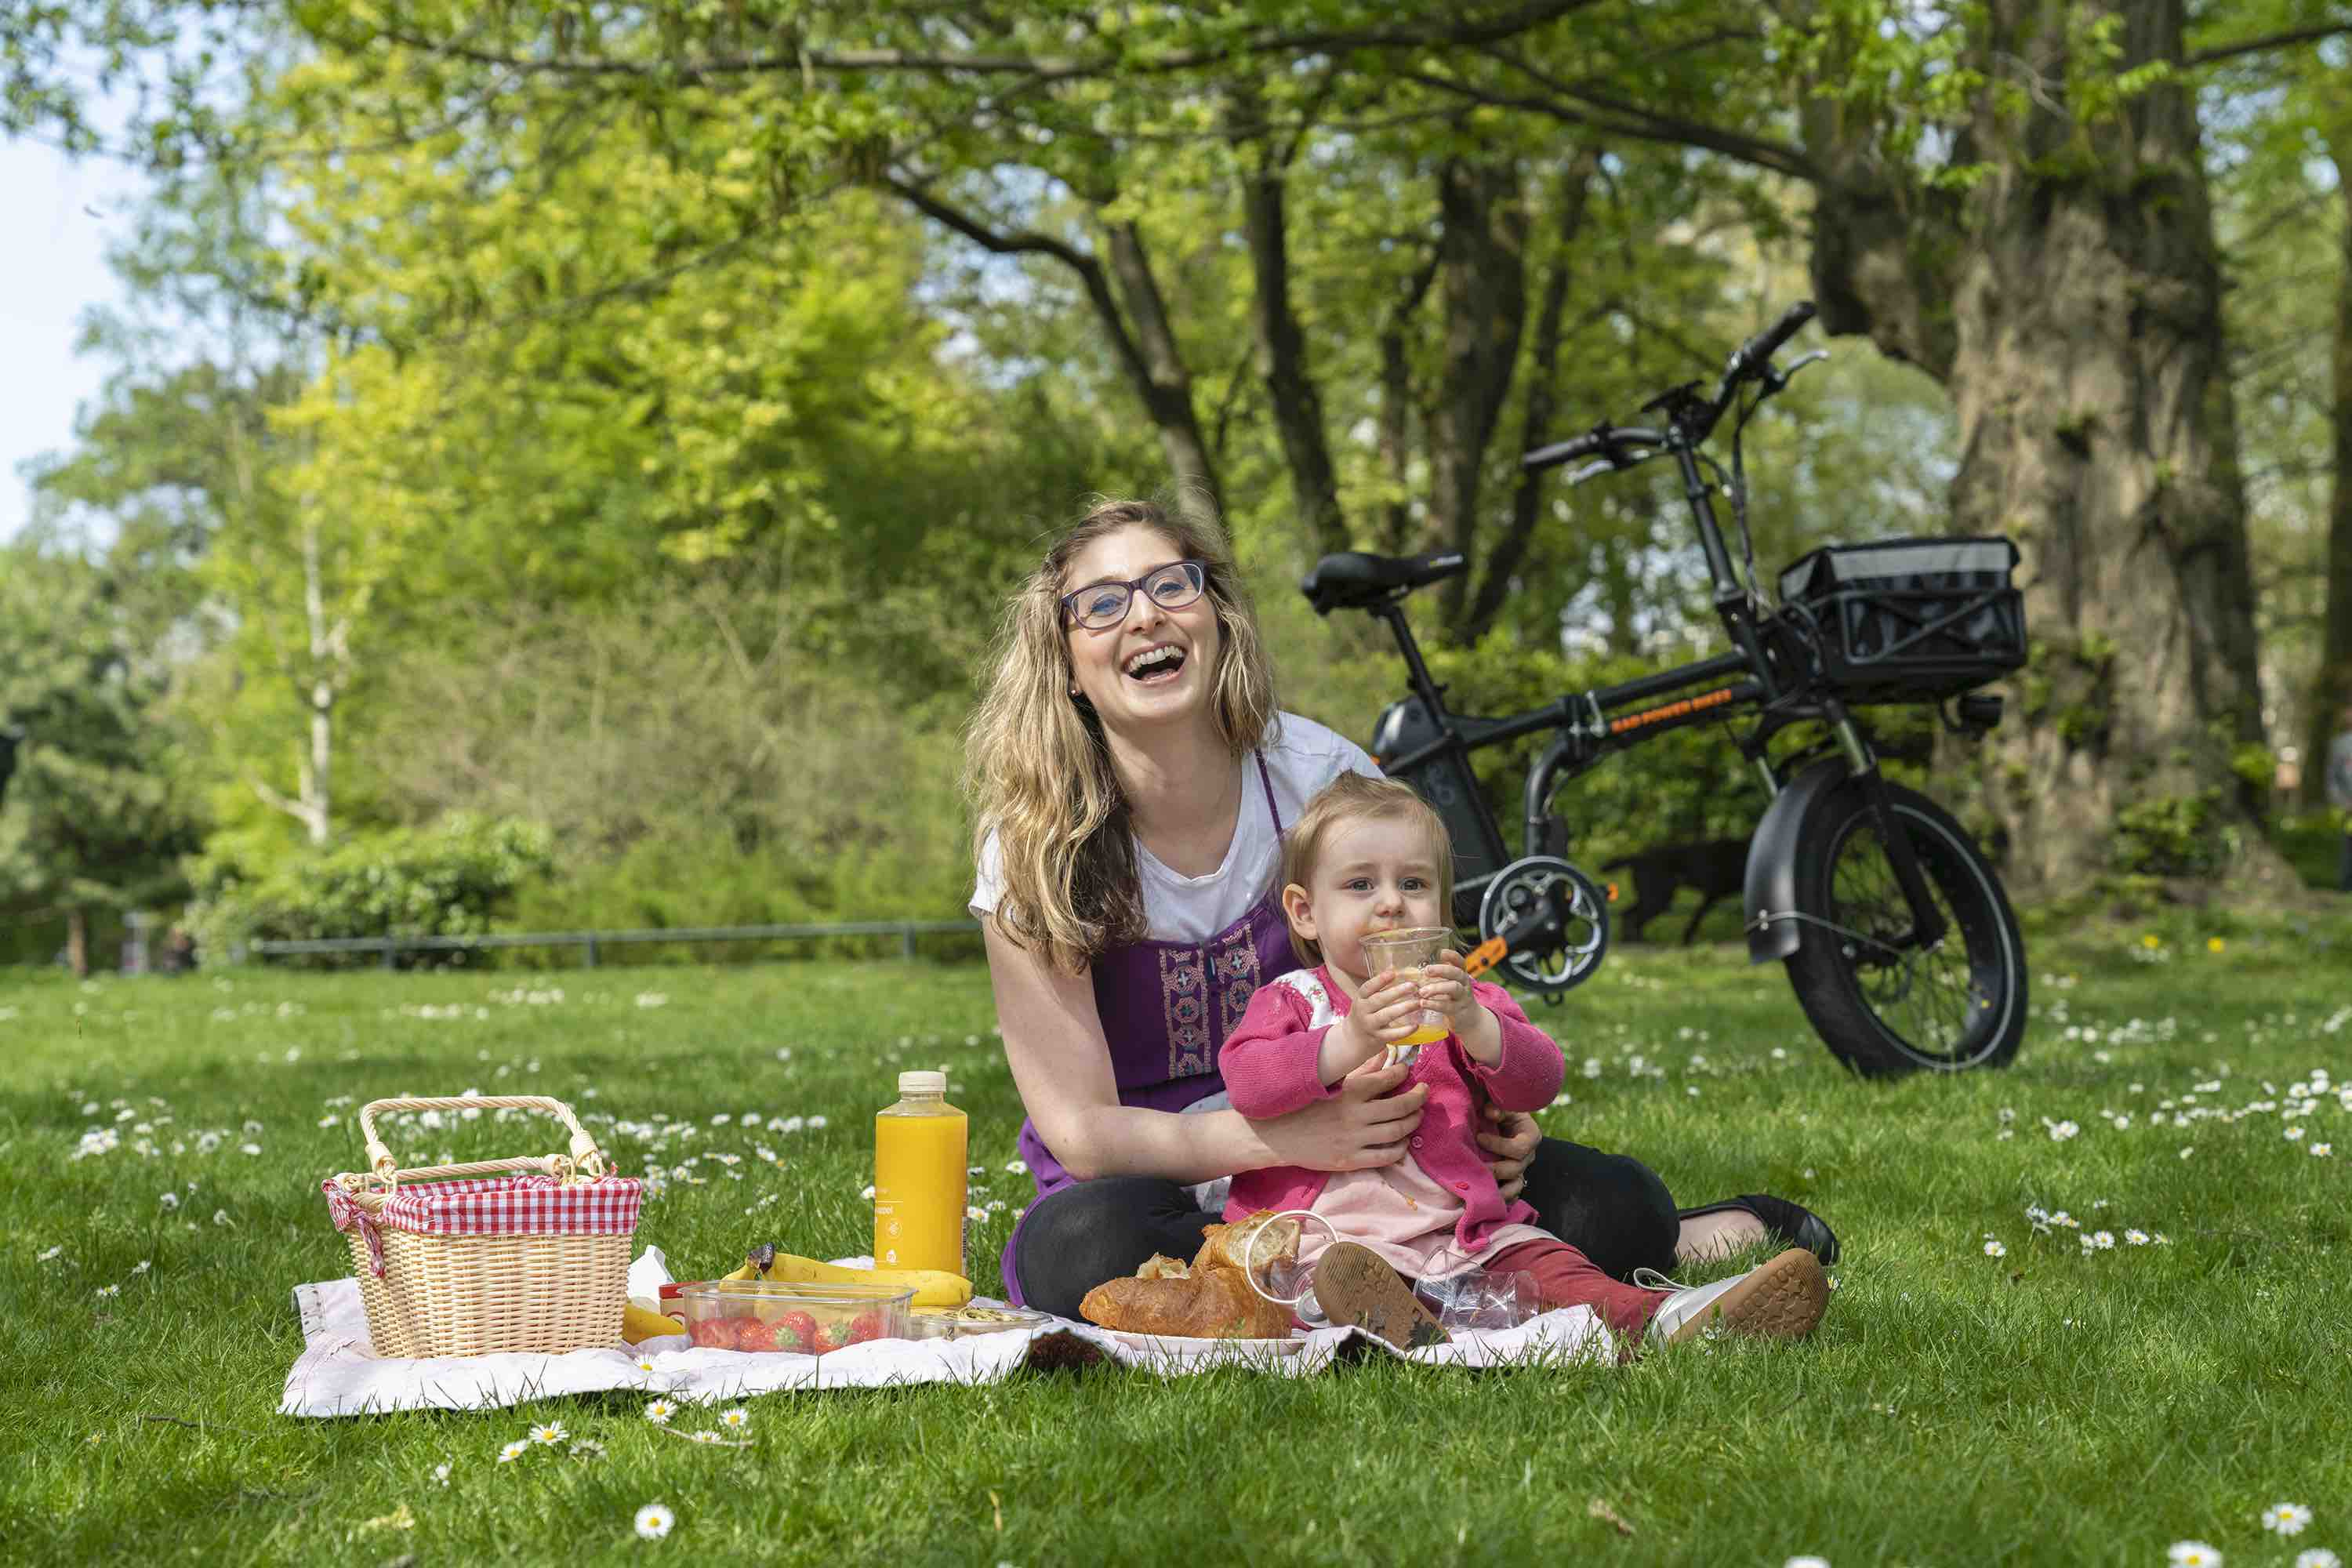 A woman and child enjoy a picnic alongside their electric bike.